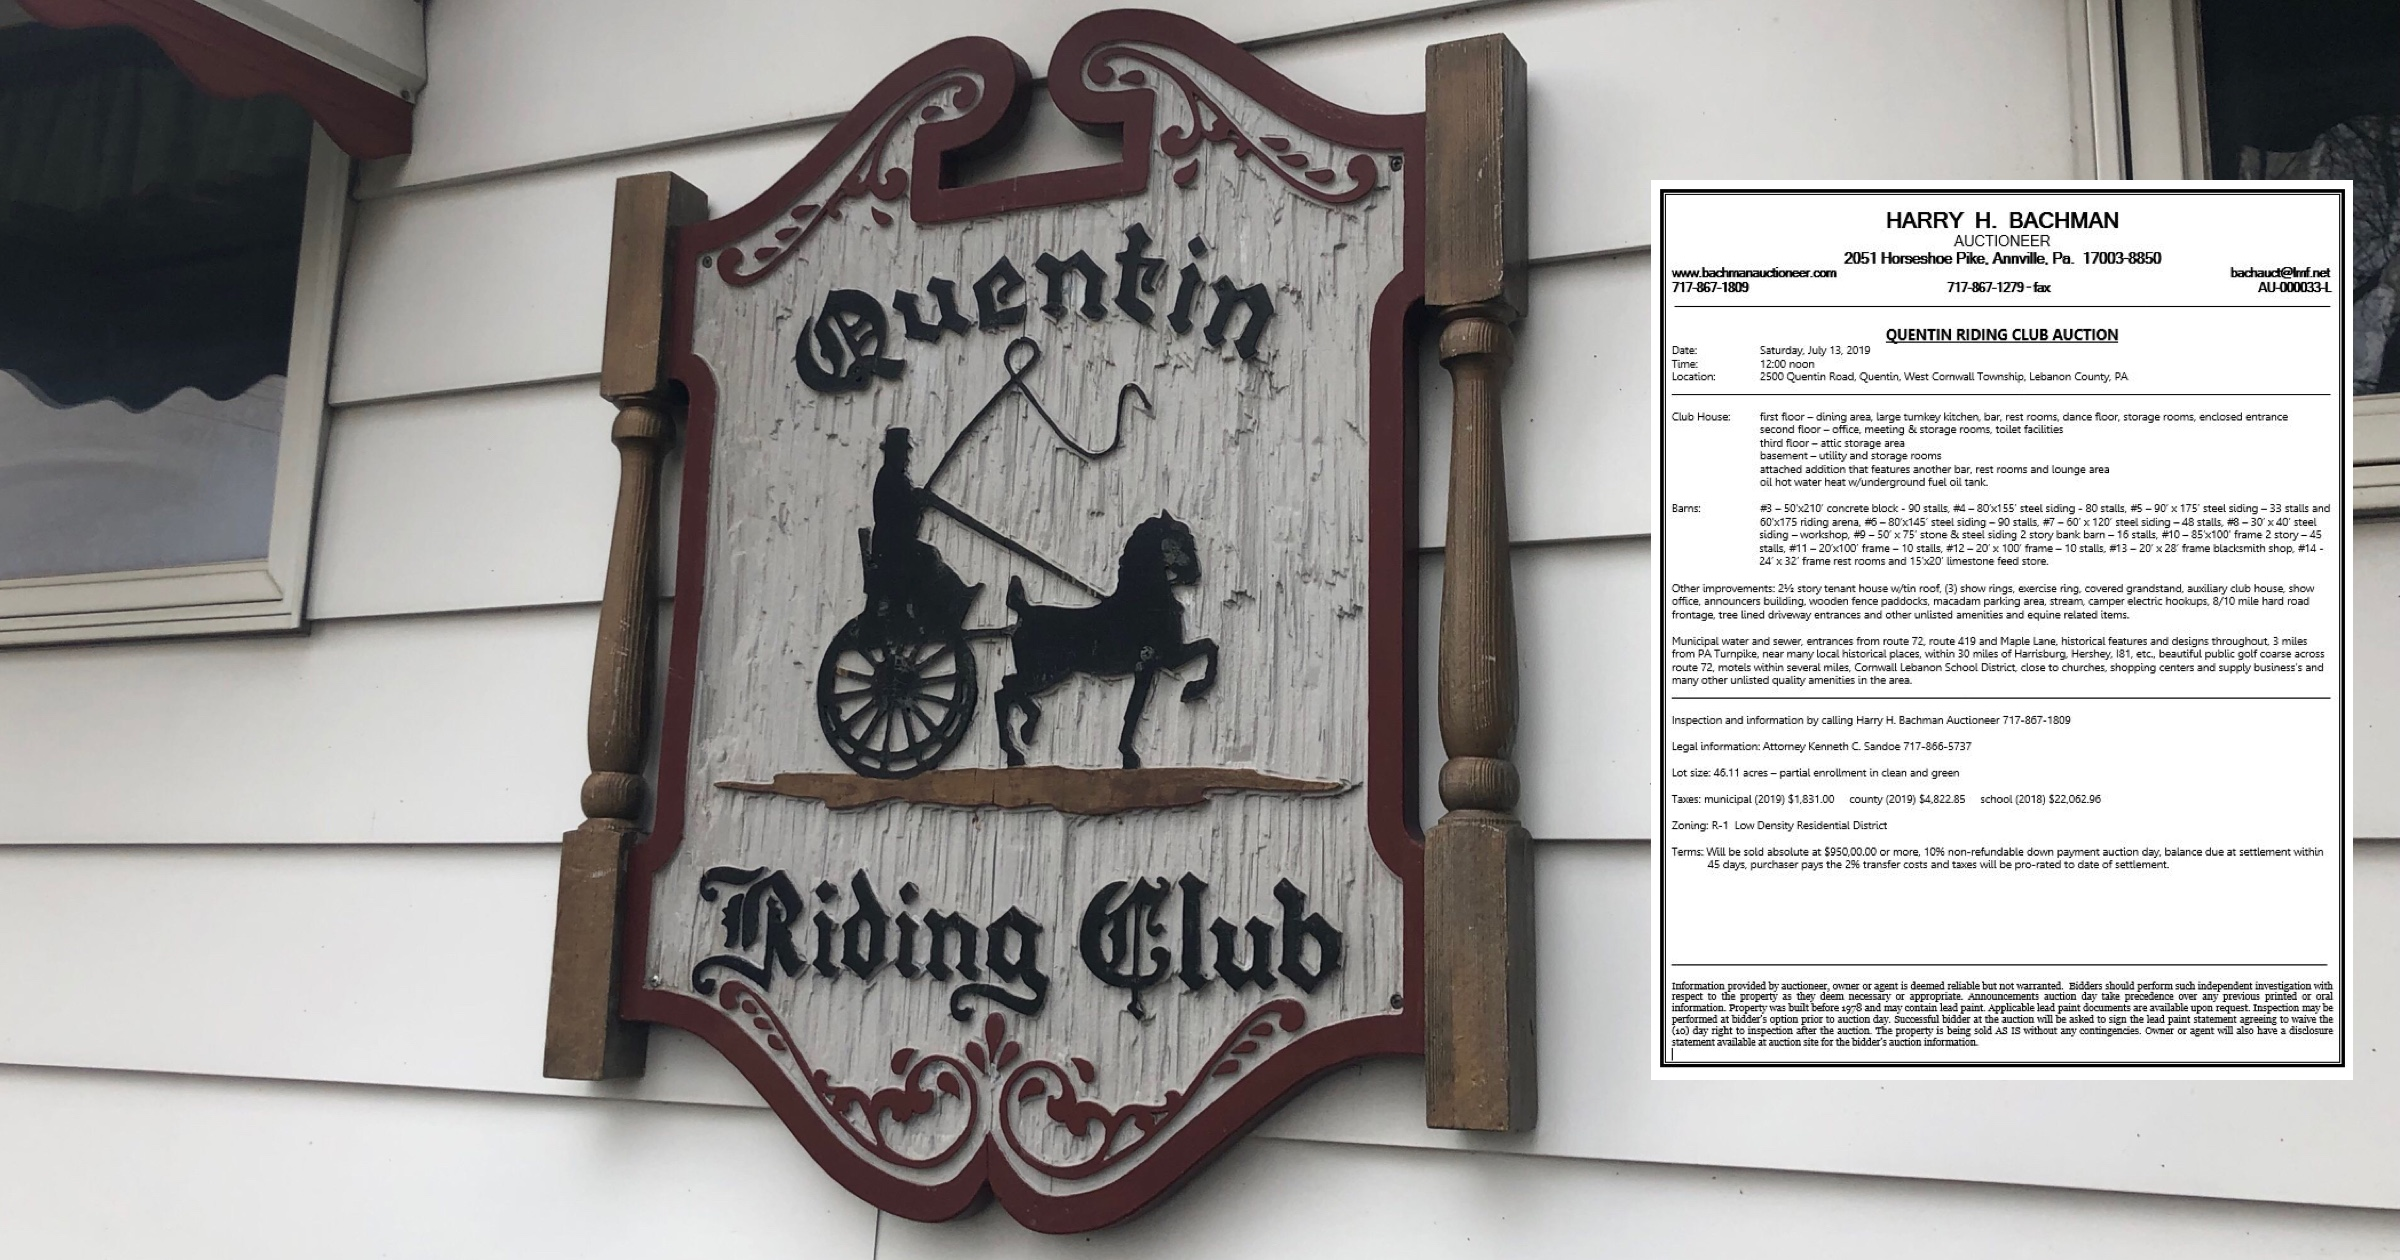 Quentin Riding Club planned for auction